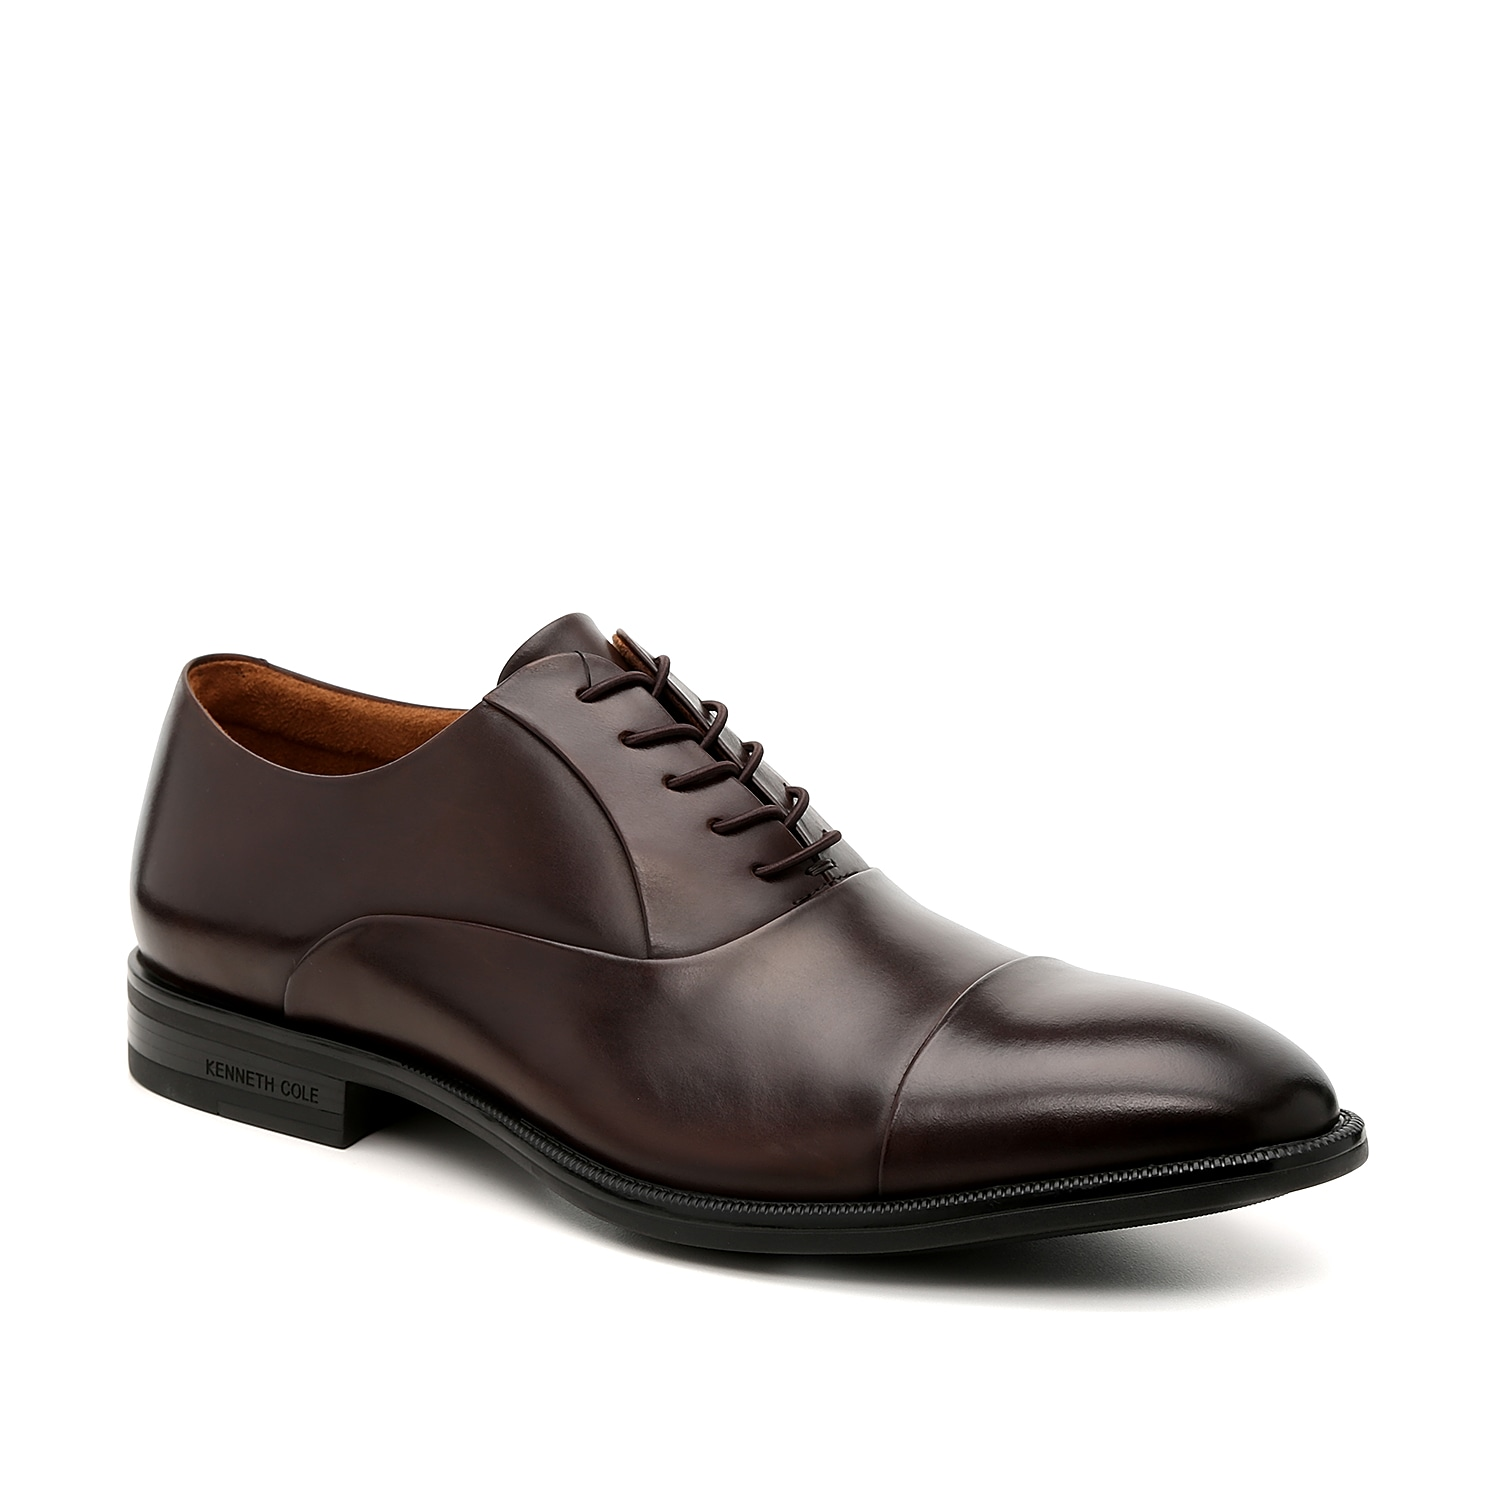 Refresh your dress shoe collection with the Futurepod oxfords from Kenneth Cole New York. These lace-ups feature a sleek leather upper and are emphasized with a raised cap toe for added texture.